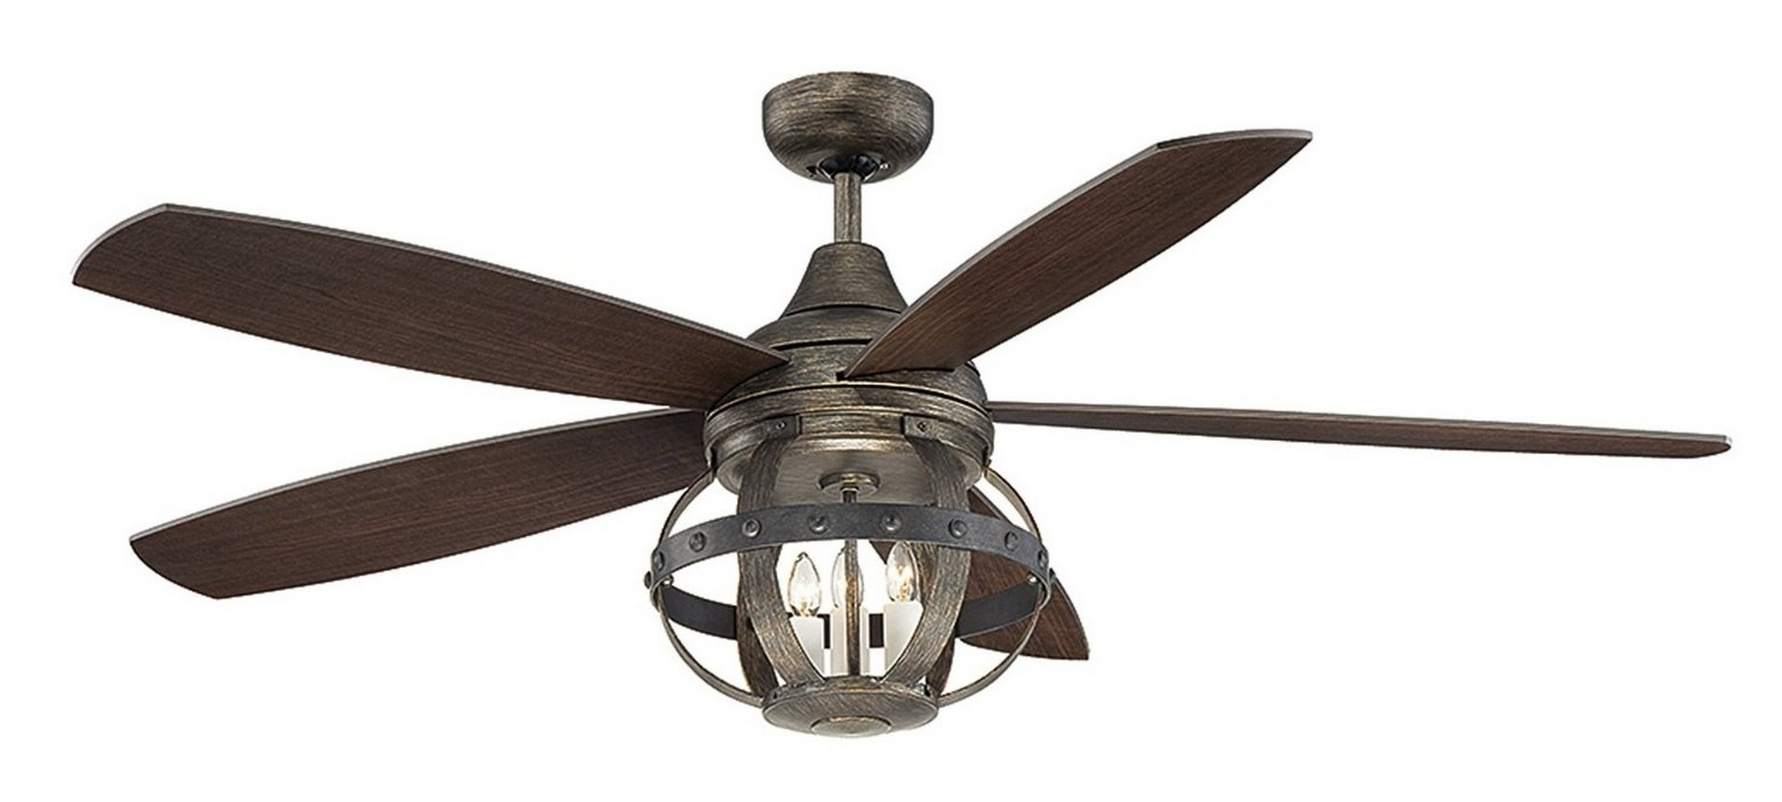 Current Industrial Outdoor Ceiling Fan With Light Industrial Outdoor Ceiling Pertaining To Industrial Outdoor Ceiling Fans With Light (View 2 of 20)